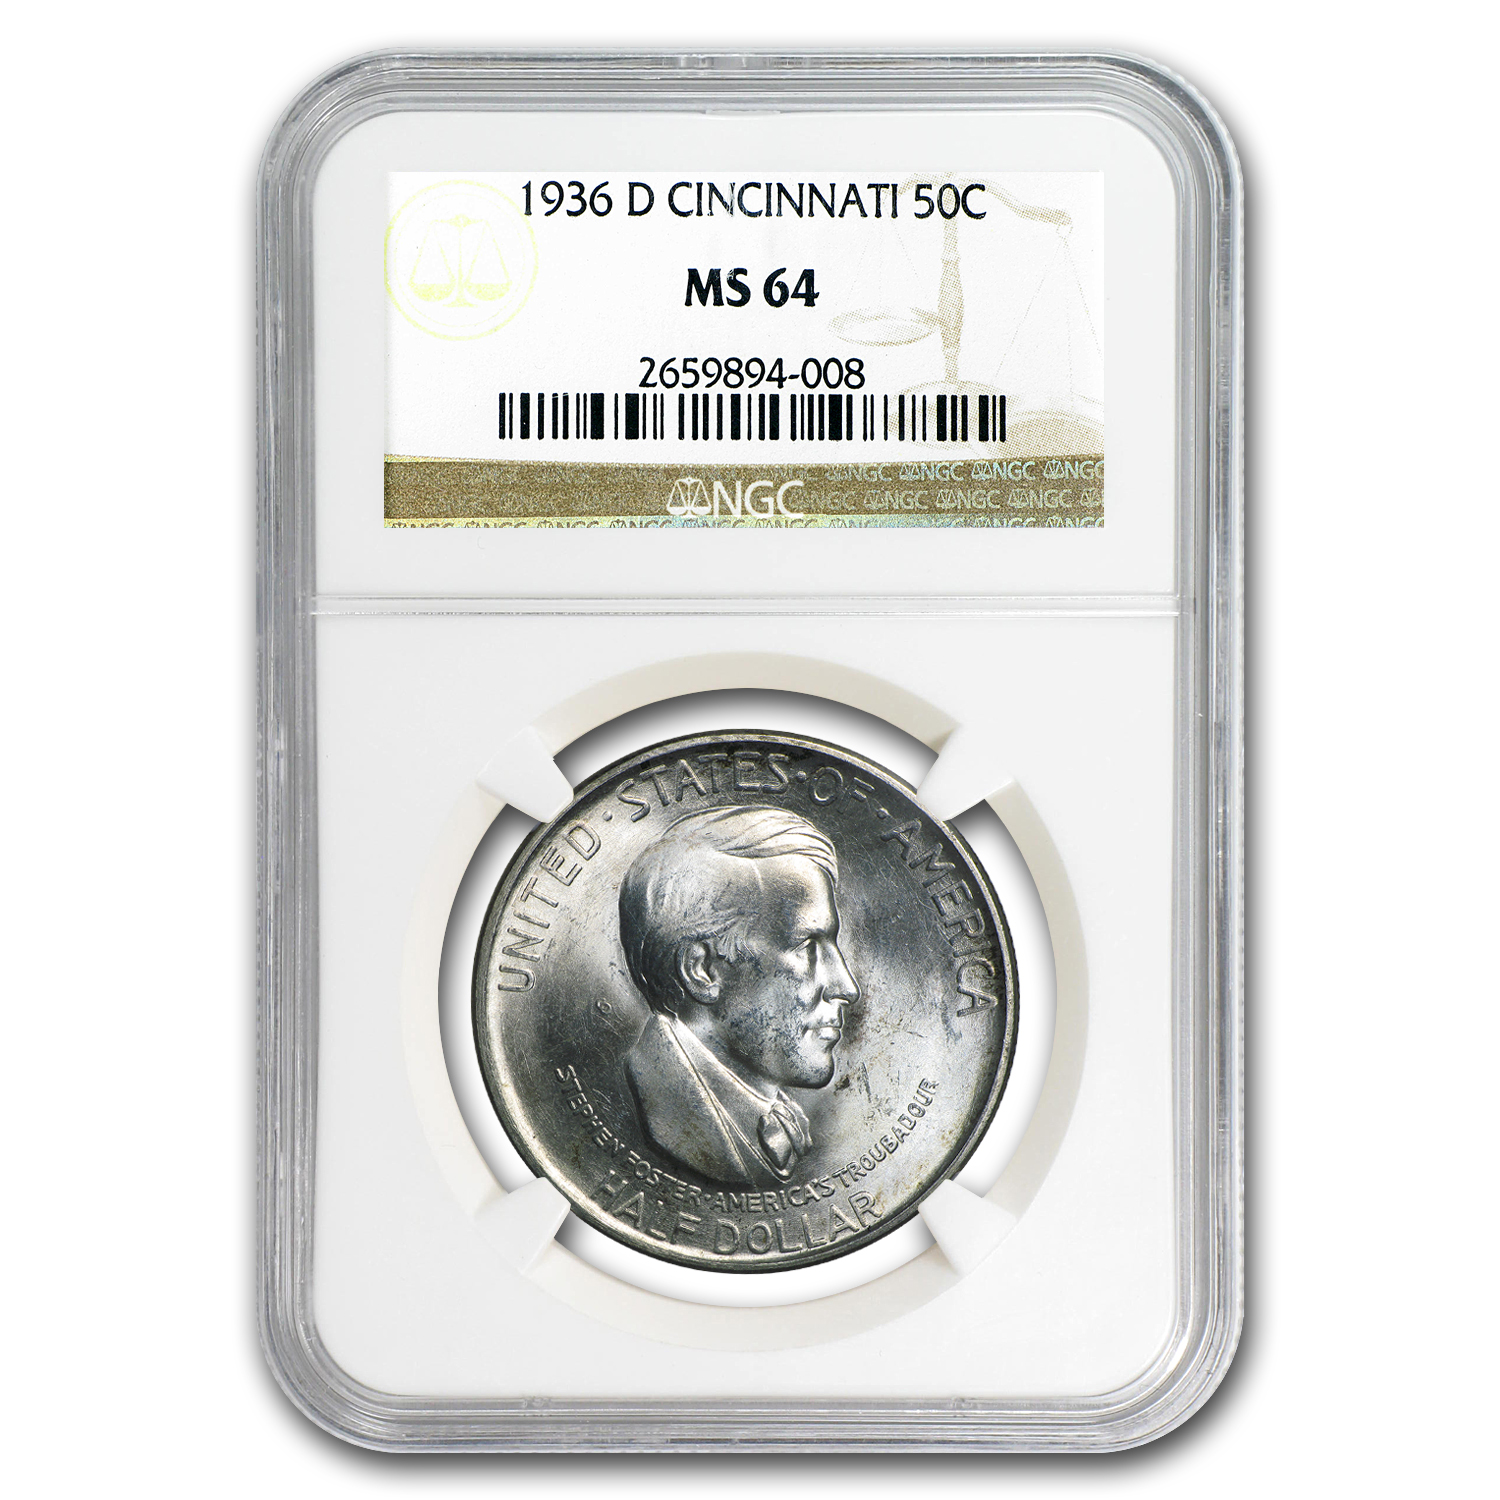 1936-D Cincinnati Music Center Half Dollar MS-64 NGC